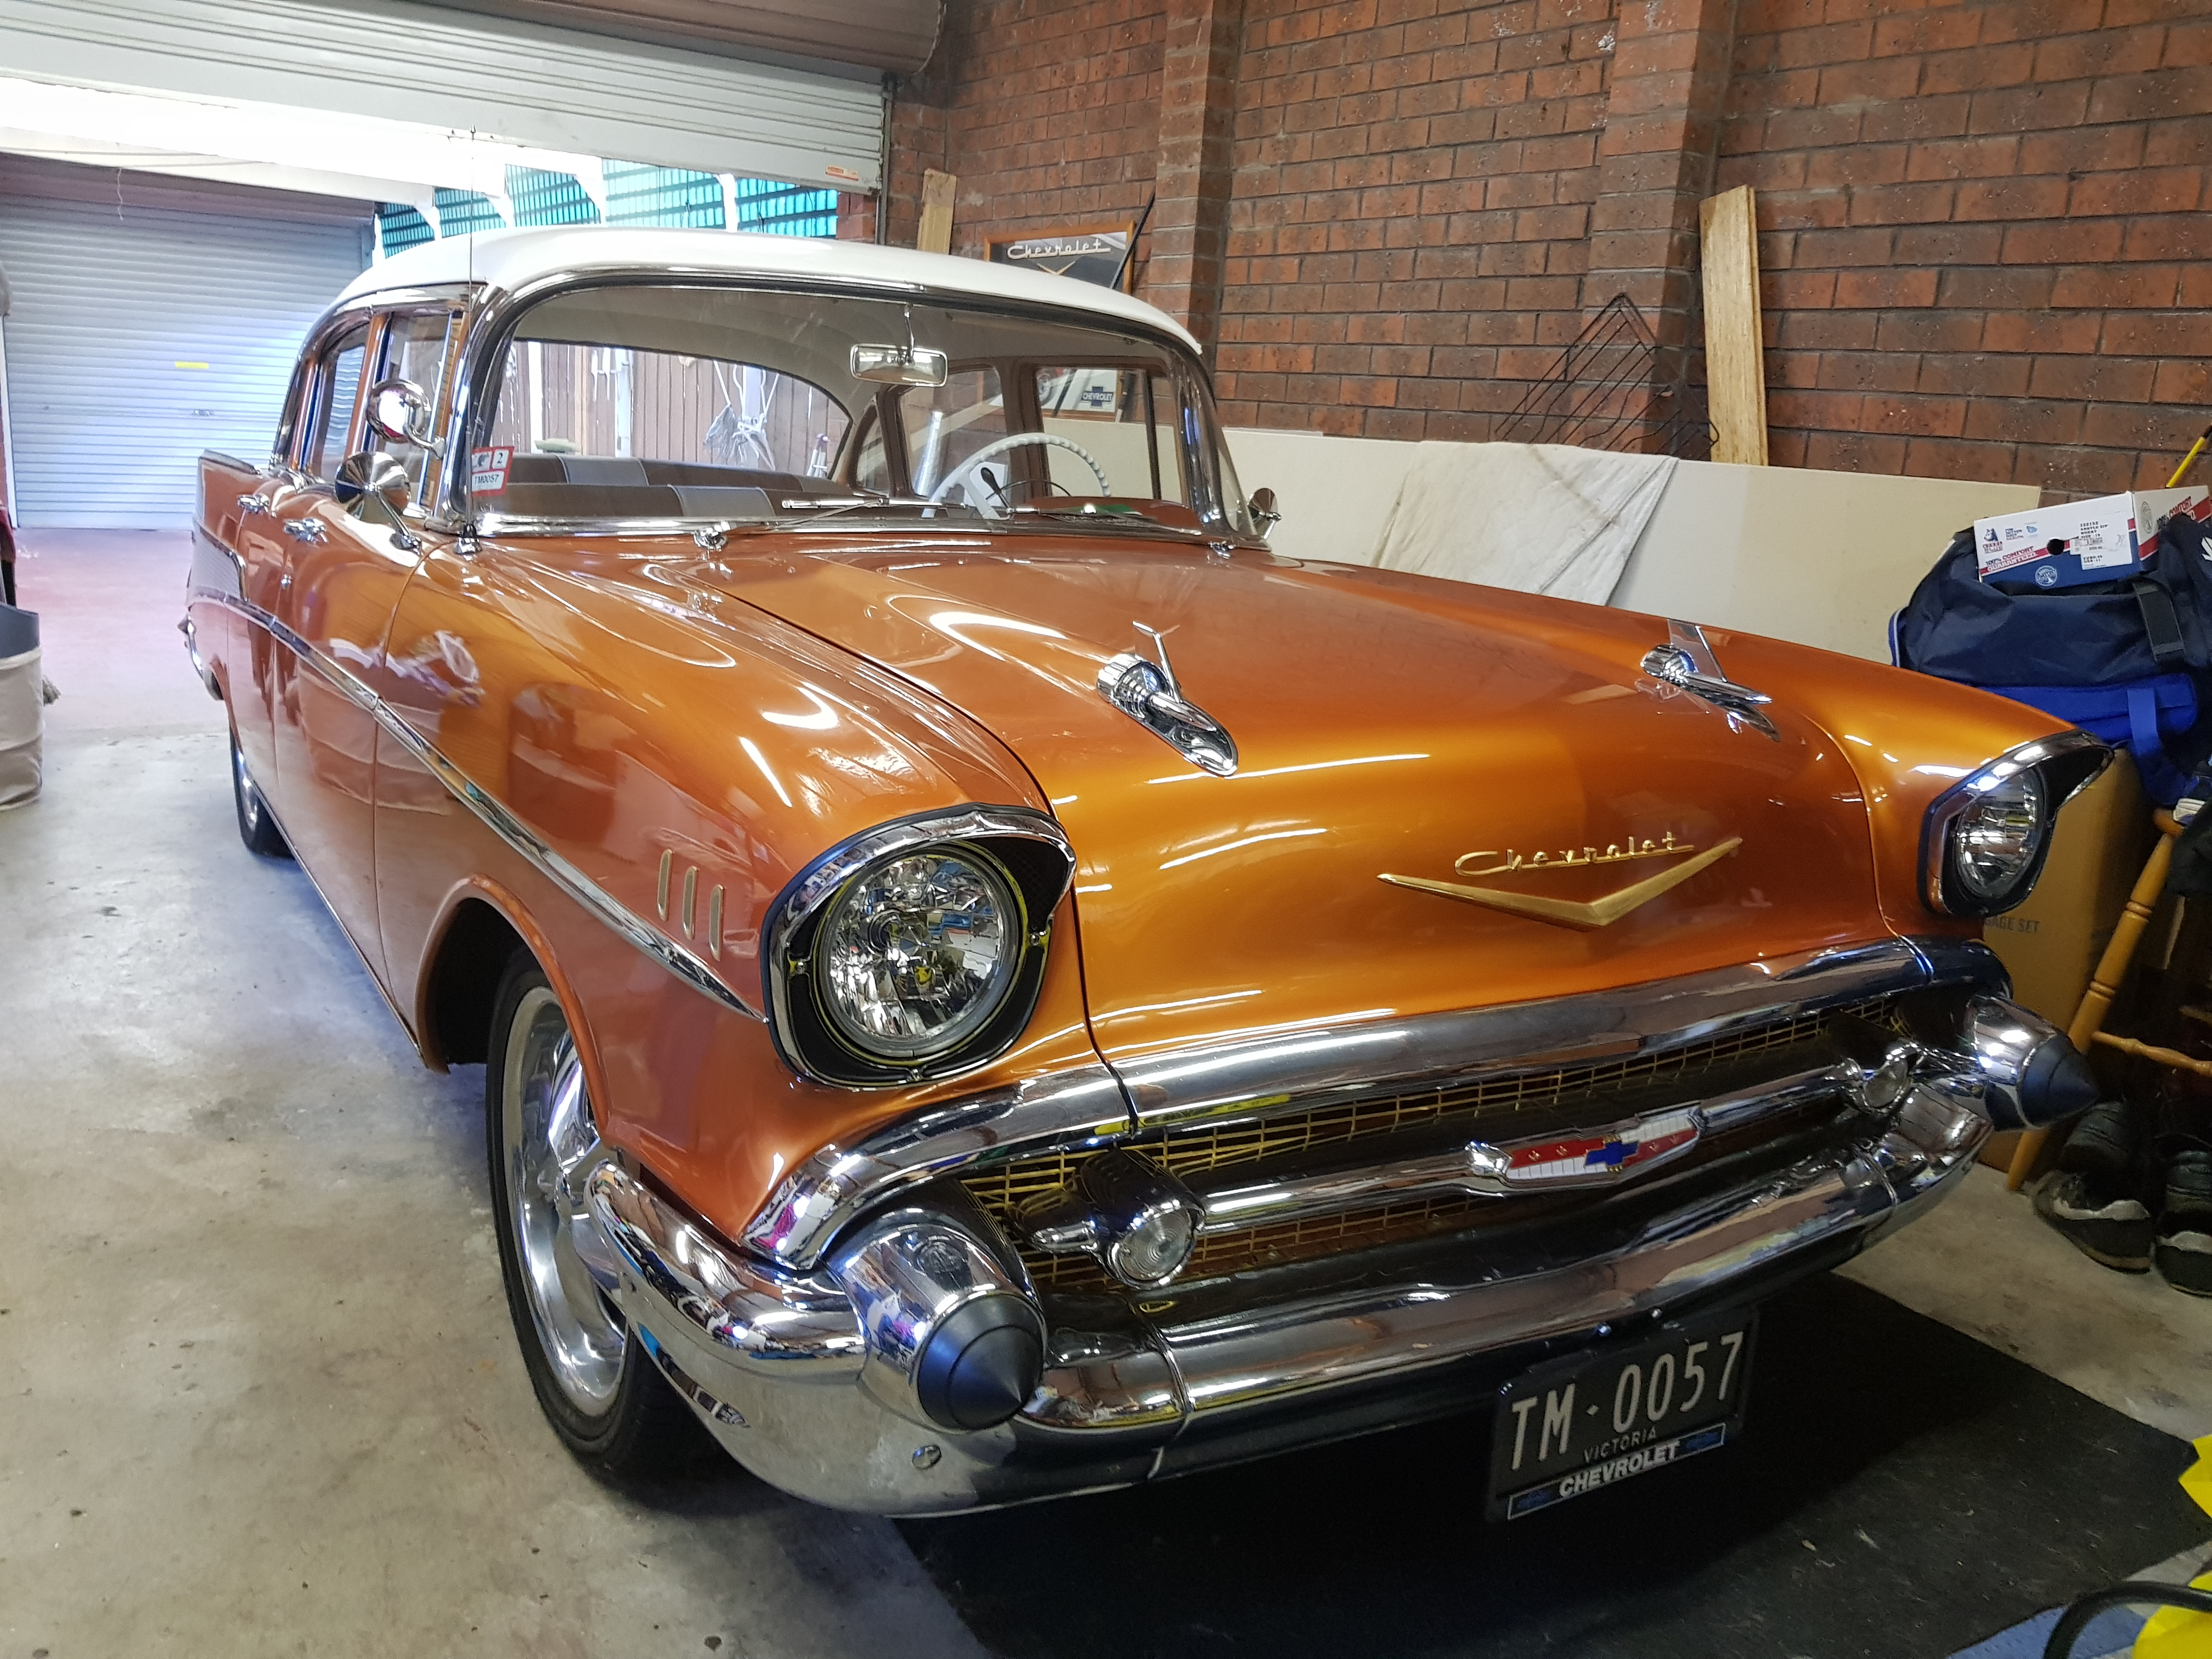 Chevrolet Bel Air Cars for sale in Australia - JUST CARS